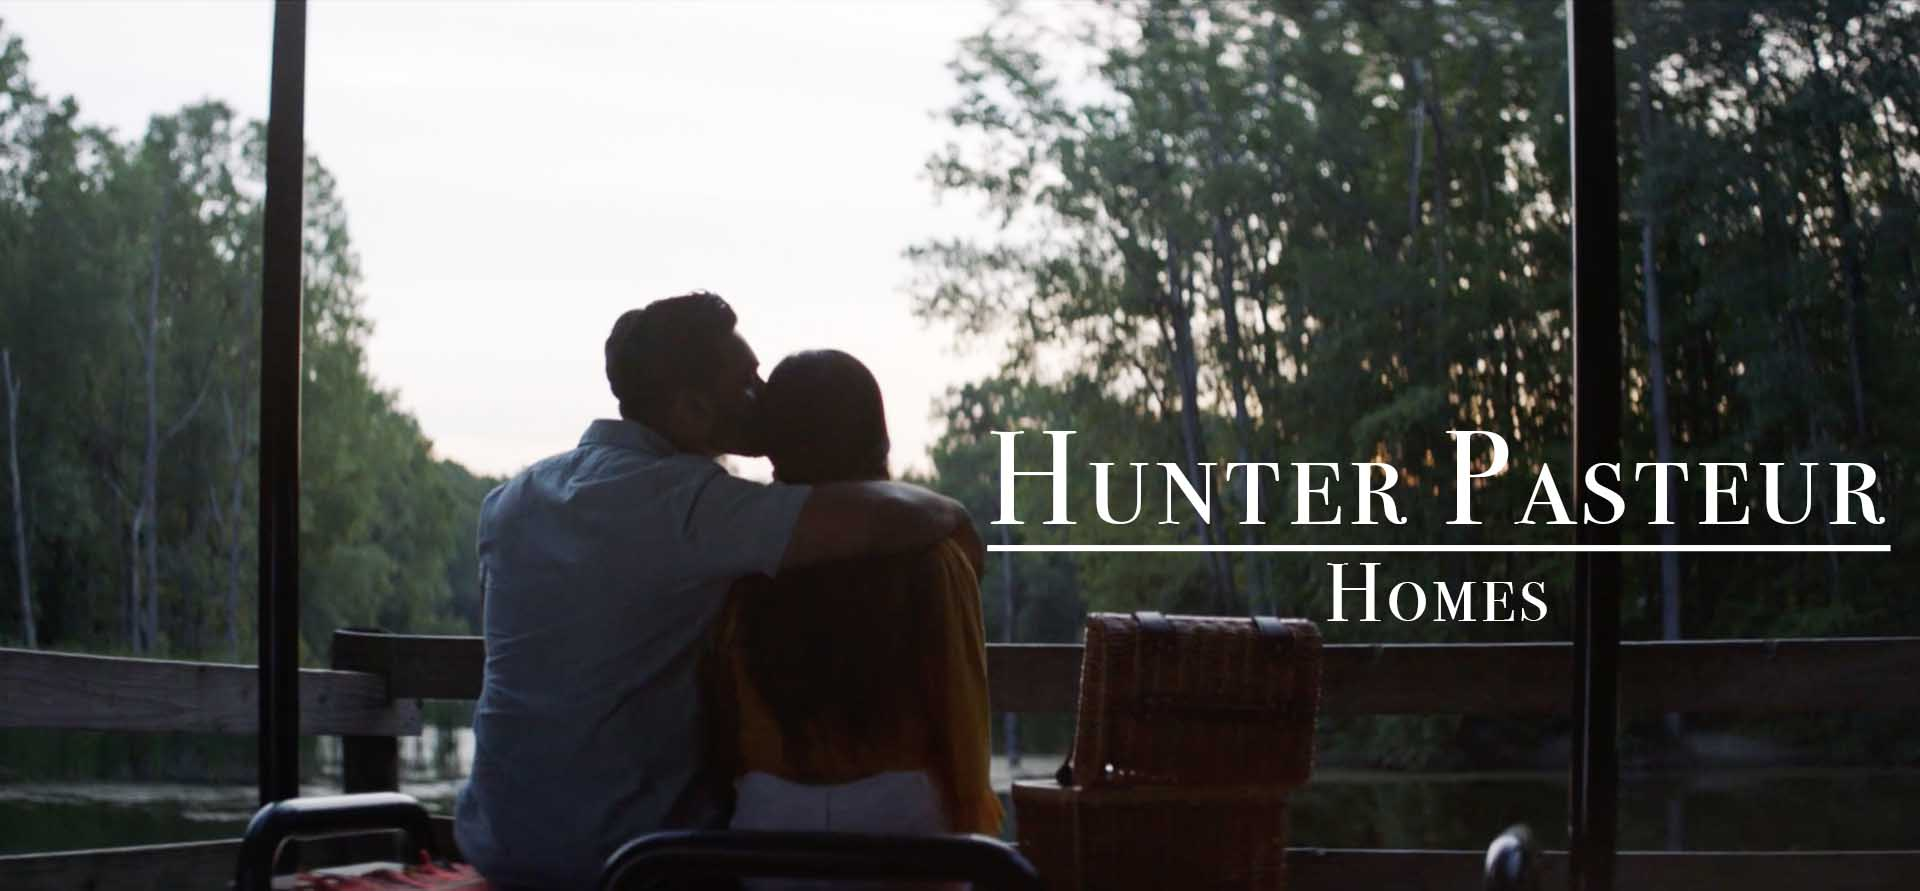 Hunter Pasture Homes Hunter Pasteur Brand Anthem Ashley B Carey